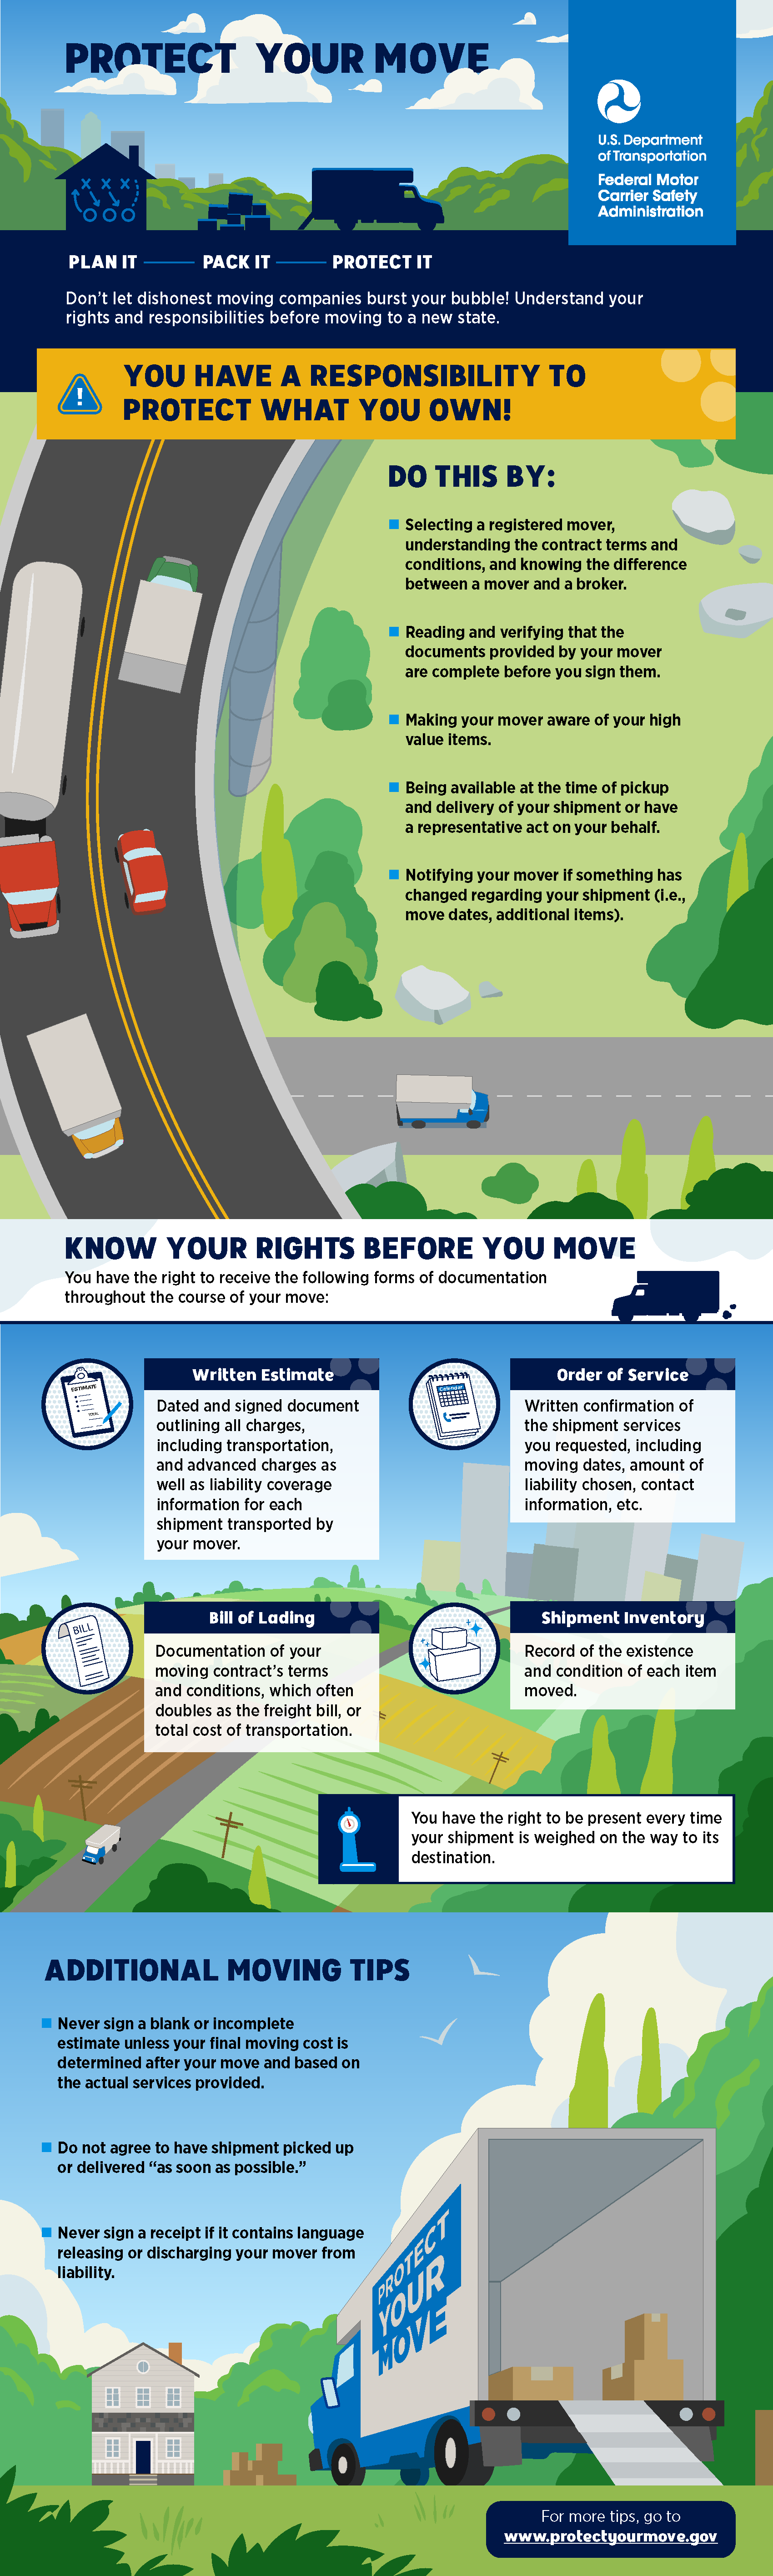 Protect Your Move Brochure, visit www.ProtectYourMove.gov